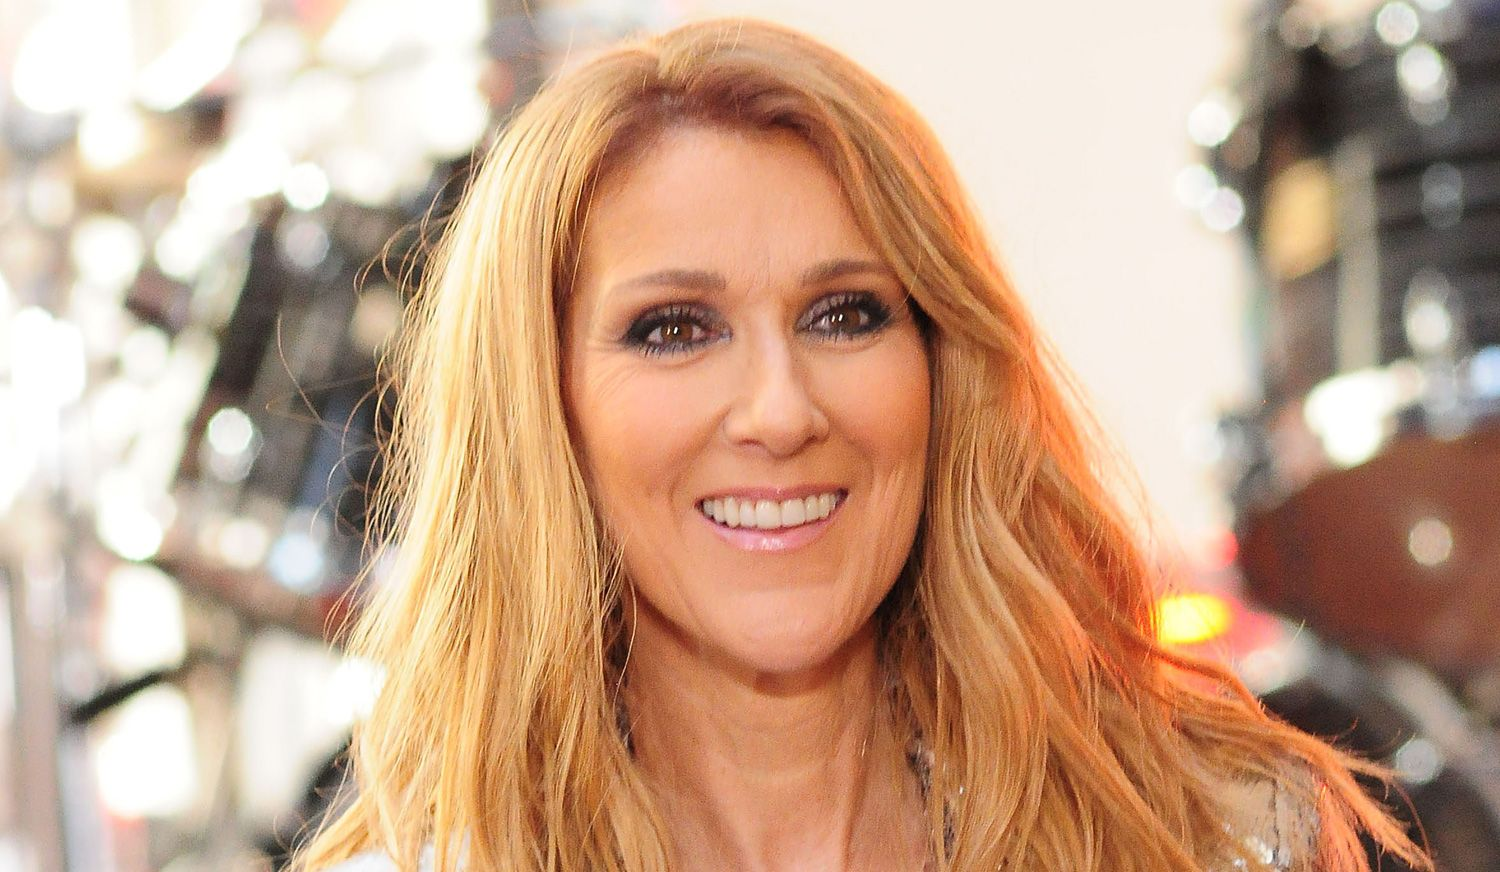 Celine Dion Shares Adorable Family Photo from the Holidays! - Just Jared